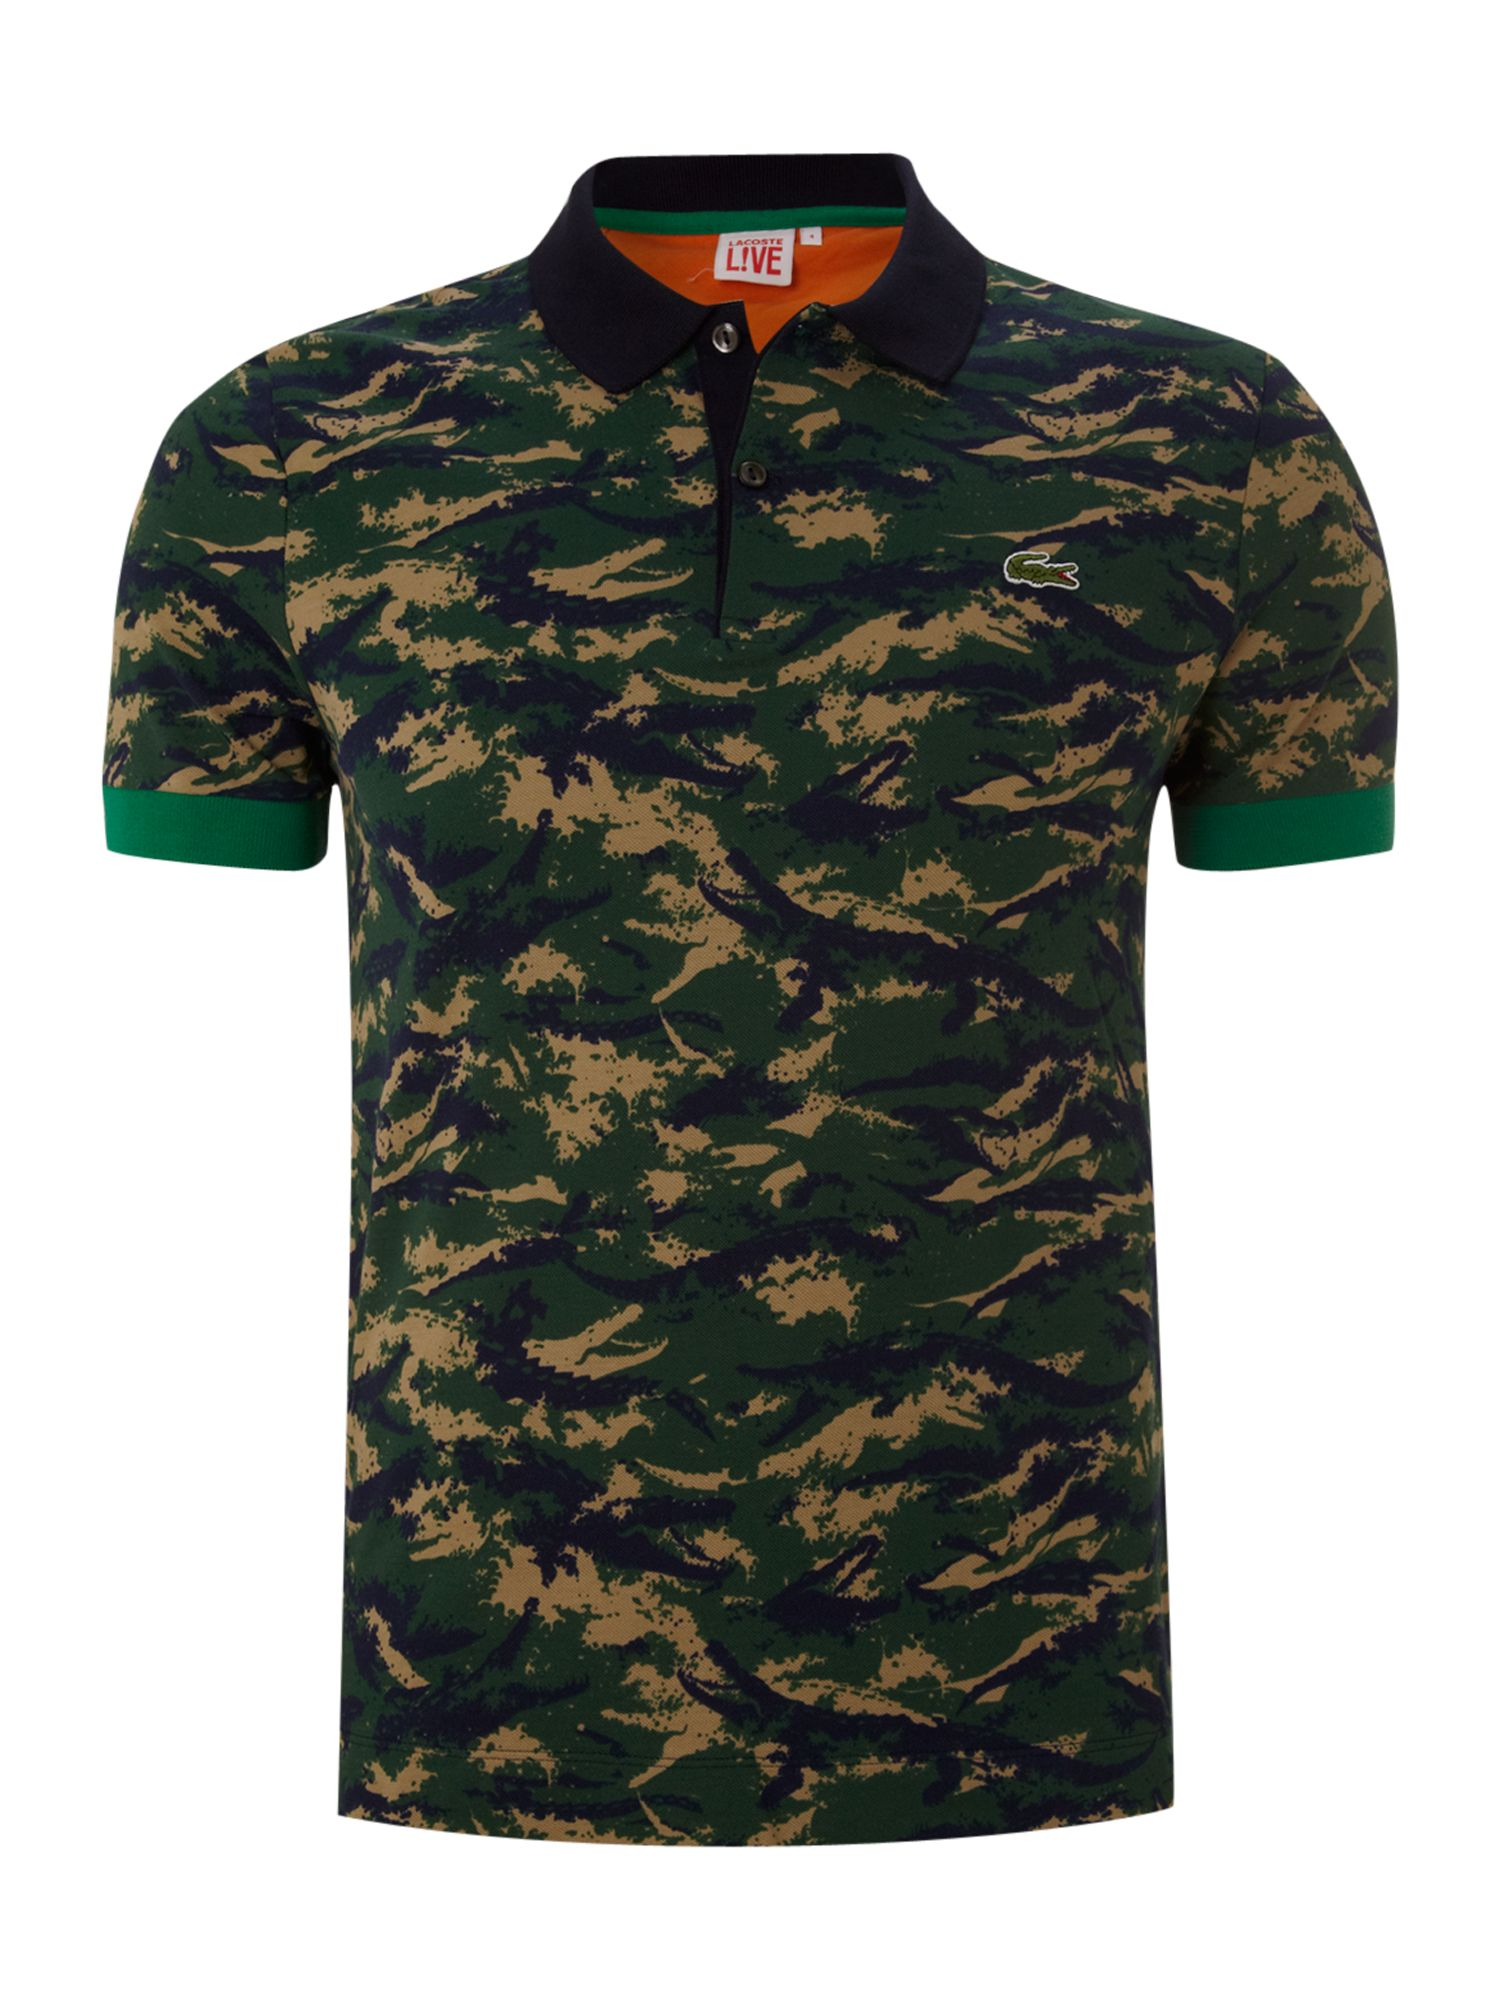 Lacoste live slim fitted camo printed polo shirt in blue for Camo polo shirts for men